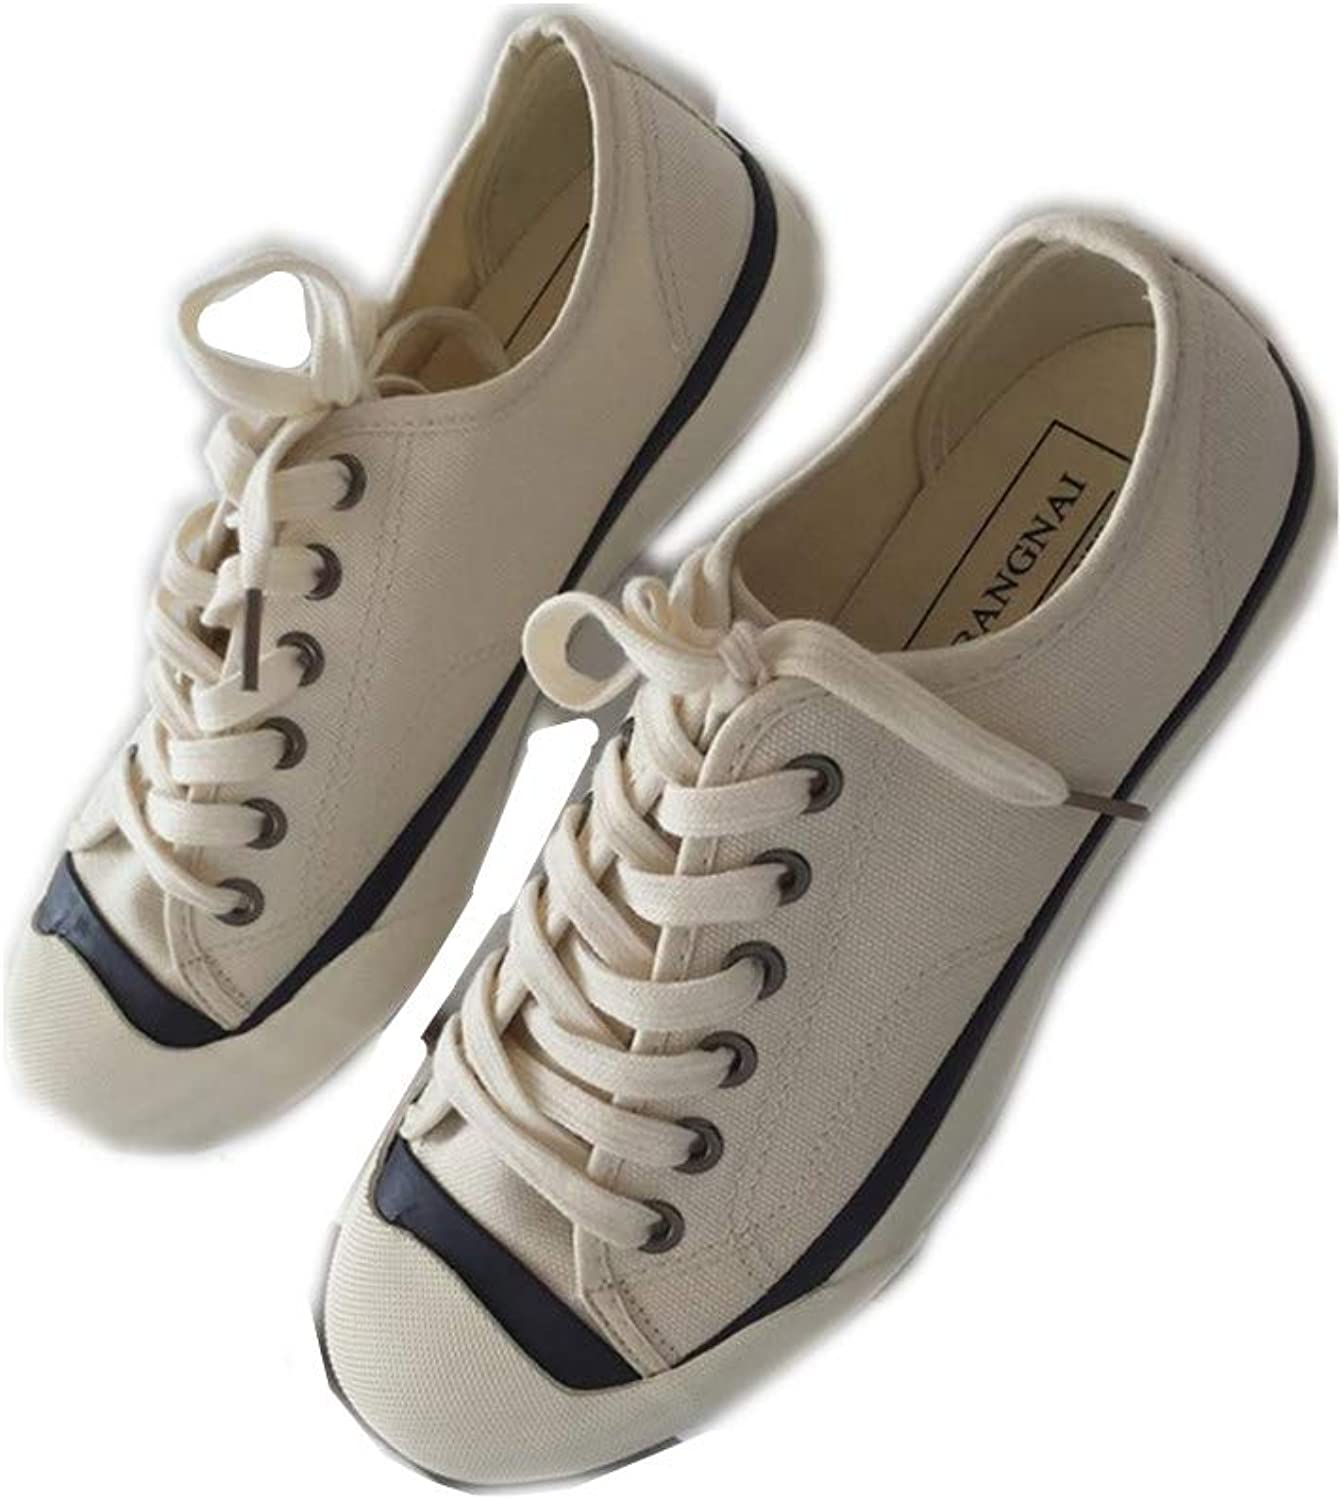 Women's Casual Wild lace with White shoes Flat Low Cut Breathable Canvas shoes